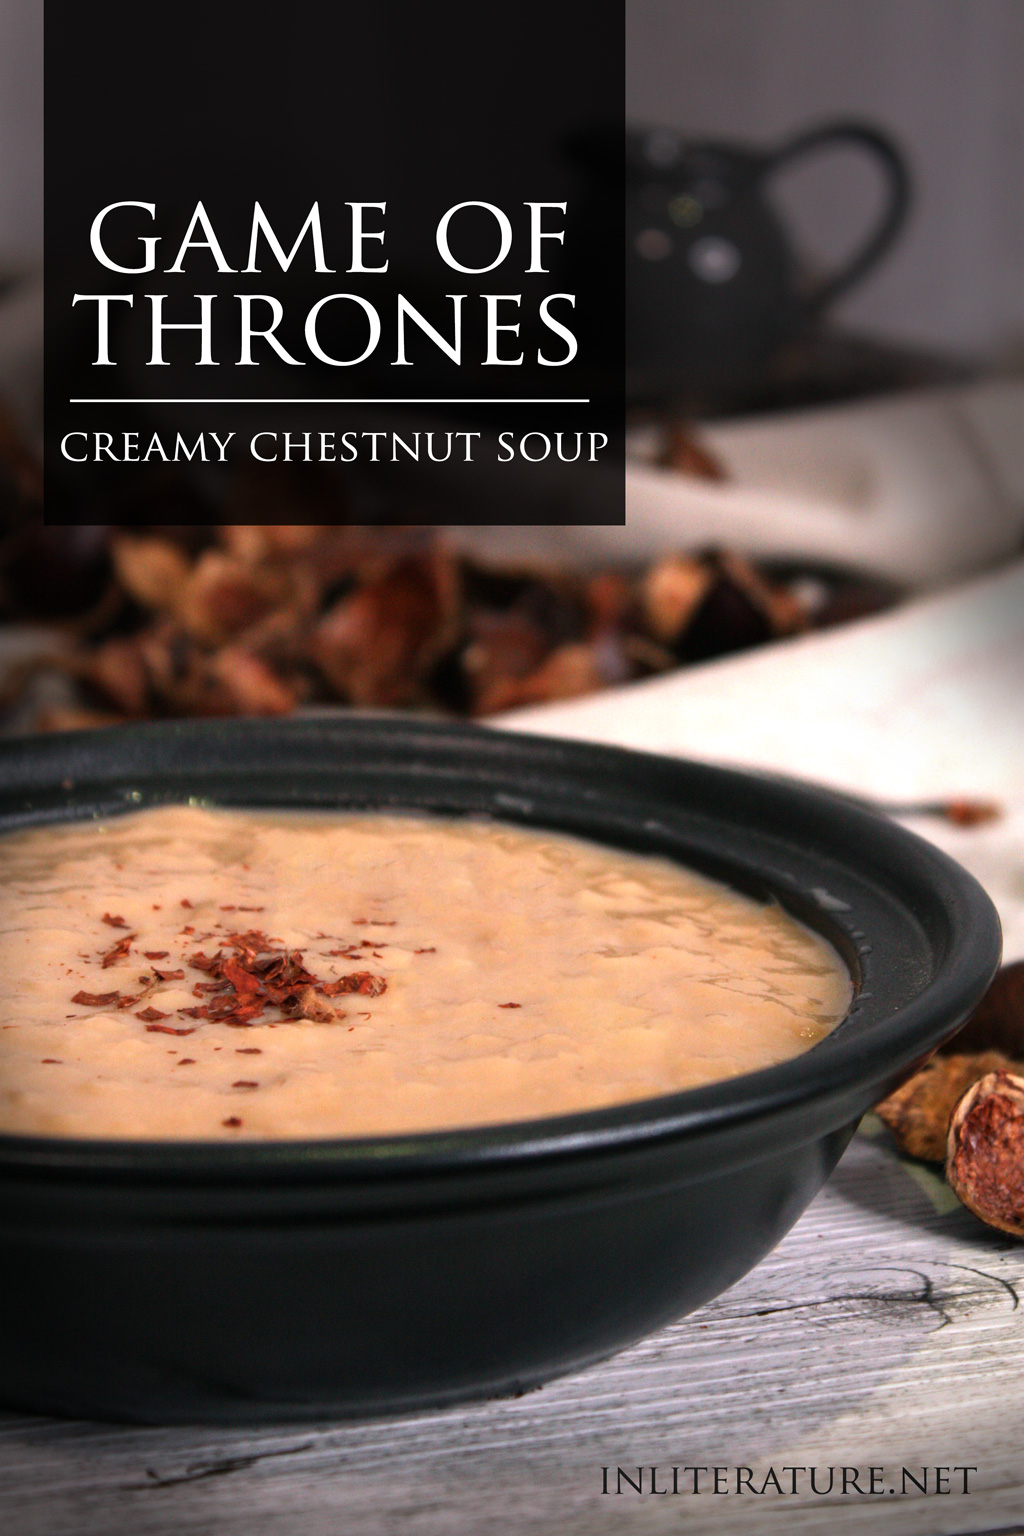 Make this creamy chestnut soup from Game of Thrones for your next dinner party.